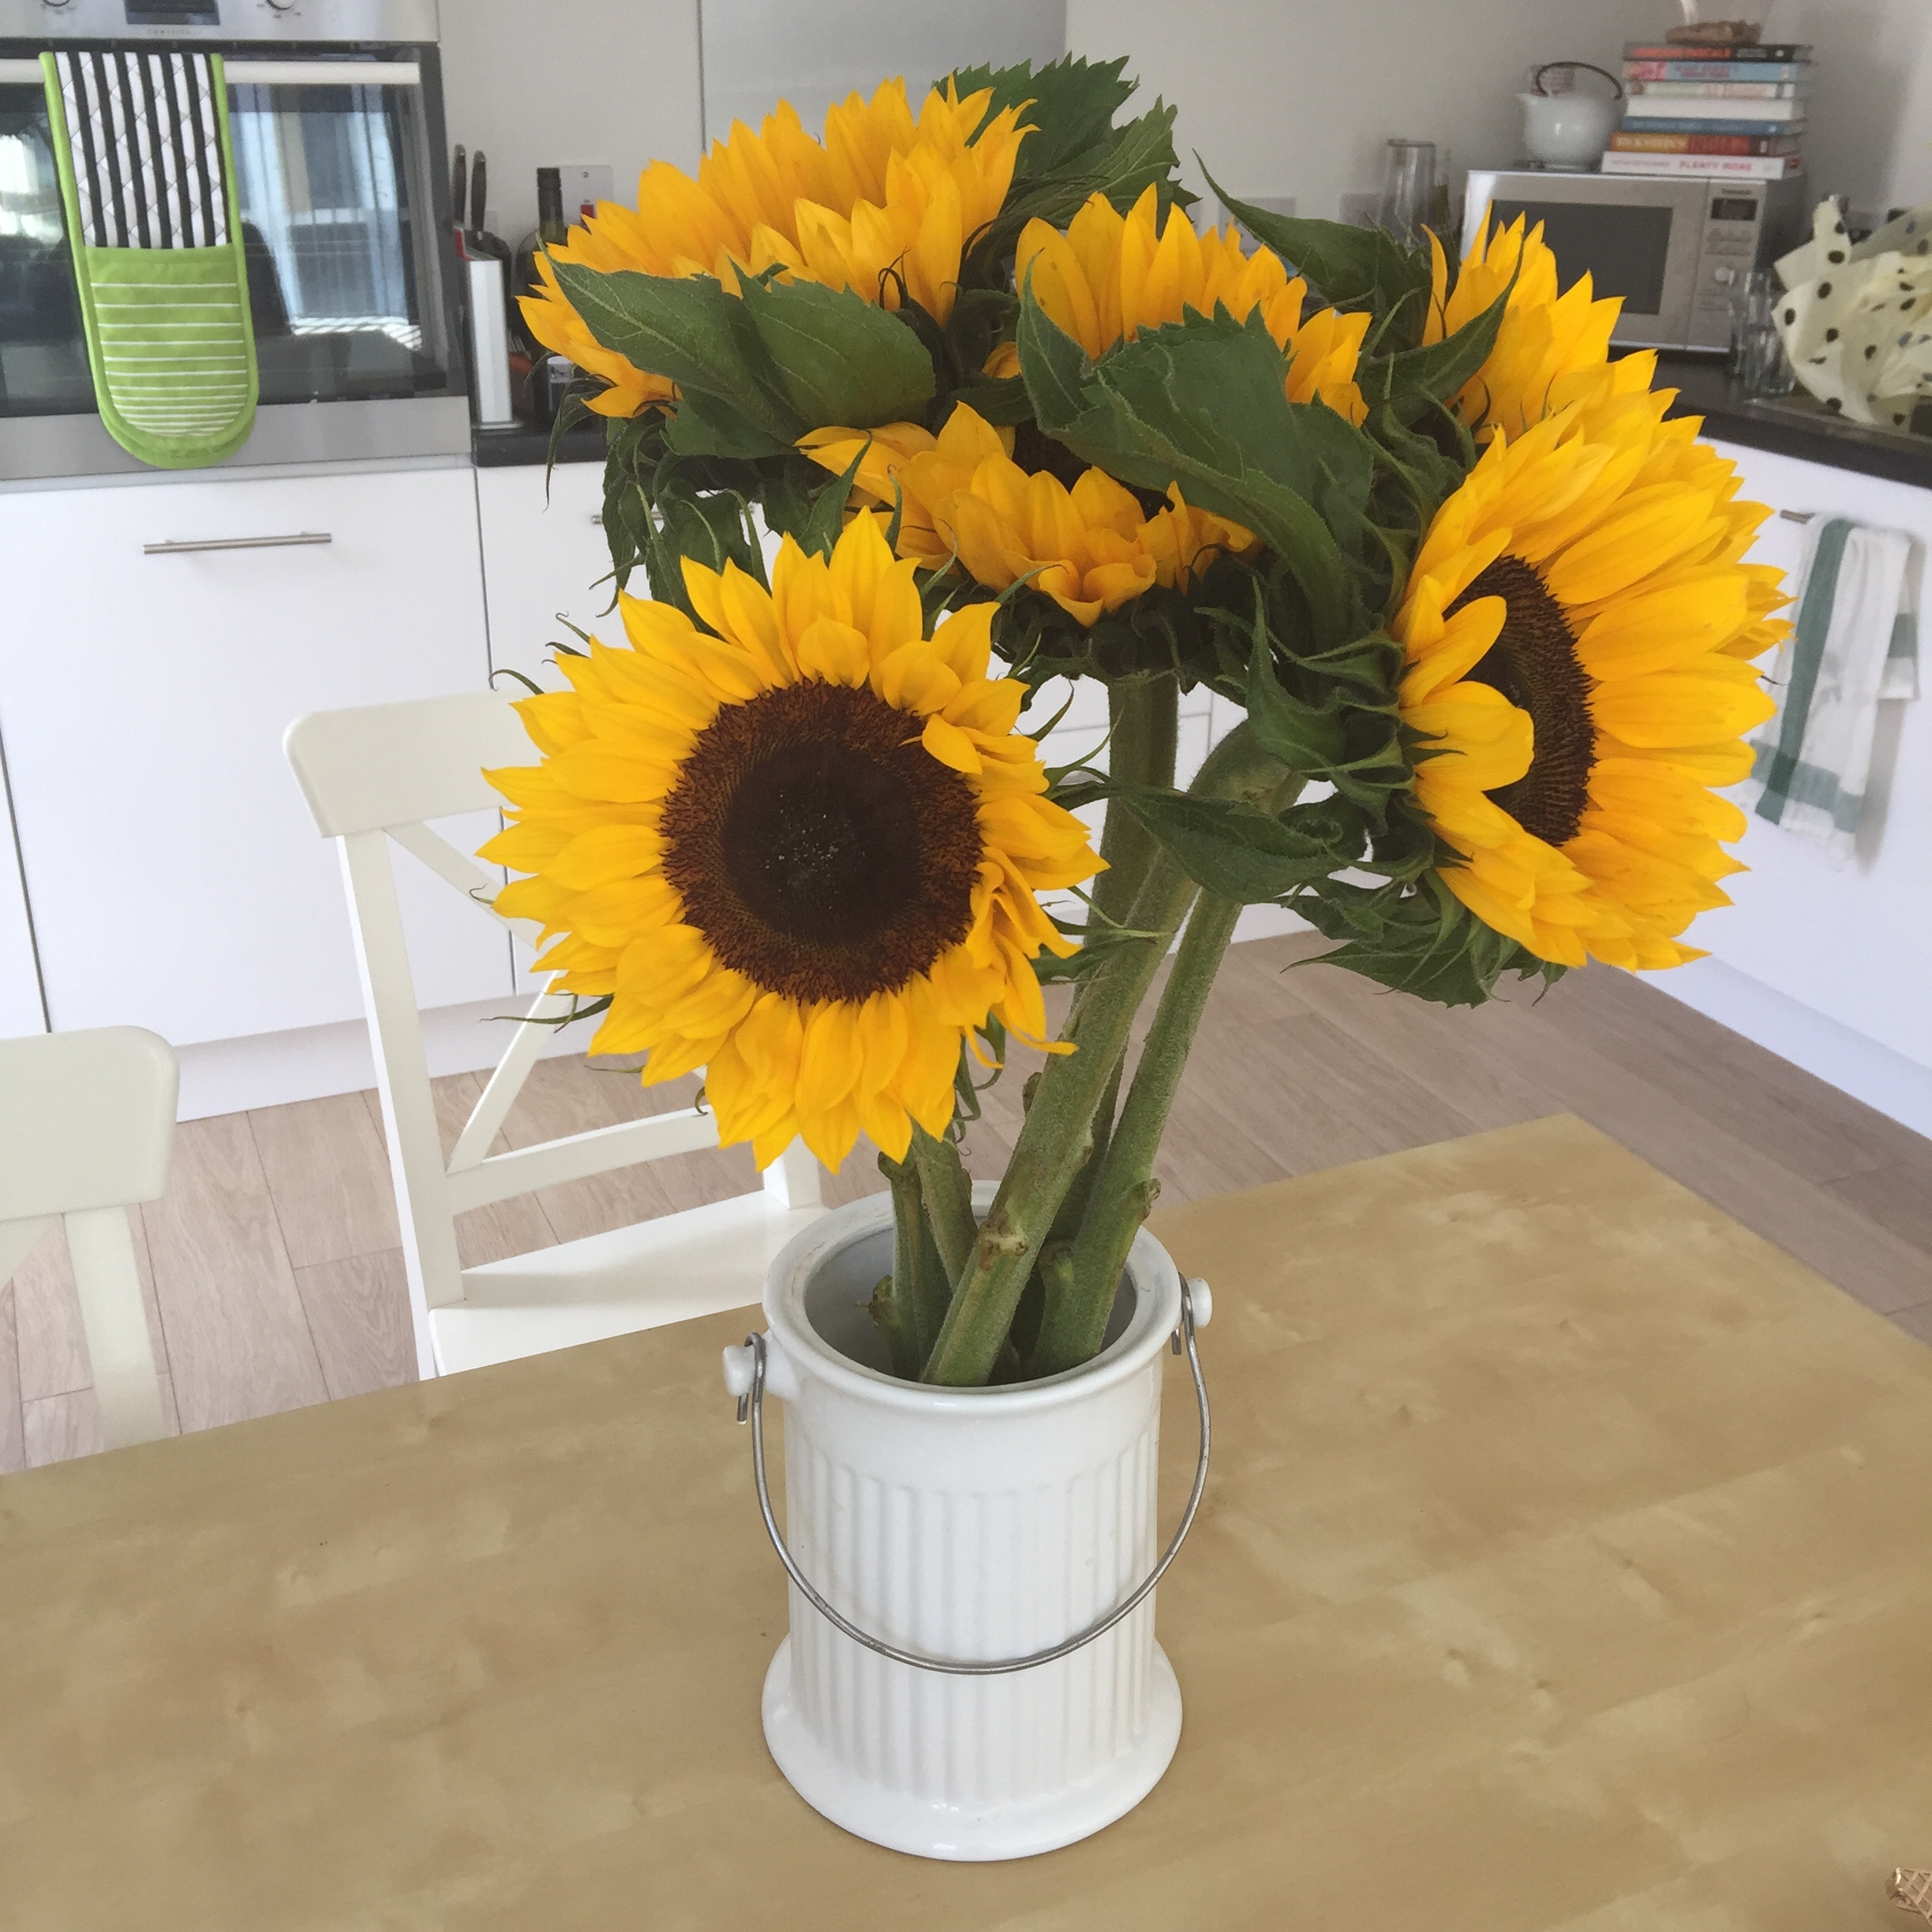 sunflowers in Hackney, The Street Where You Live